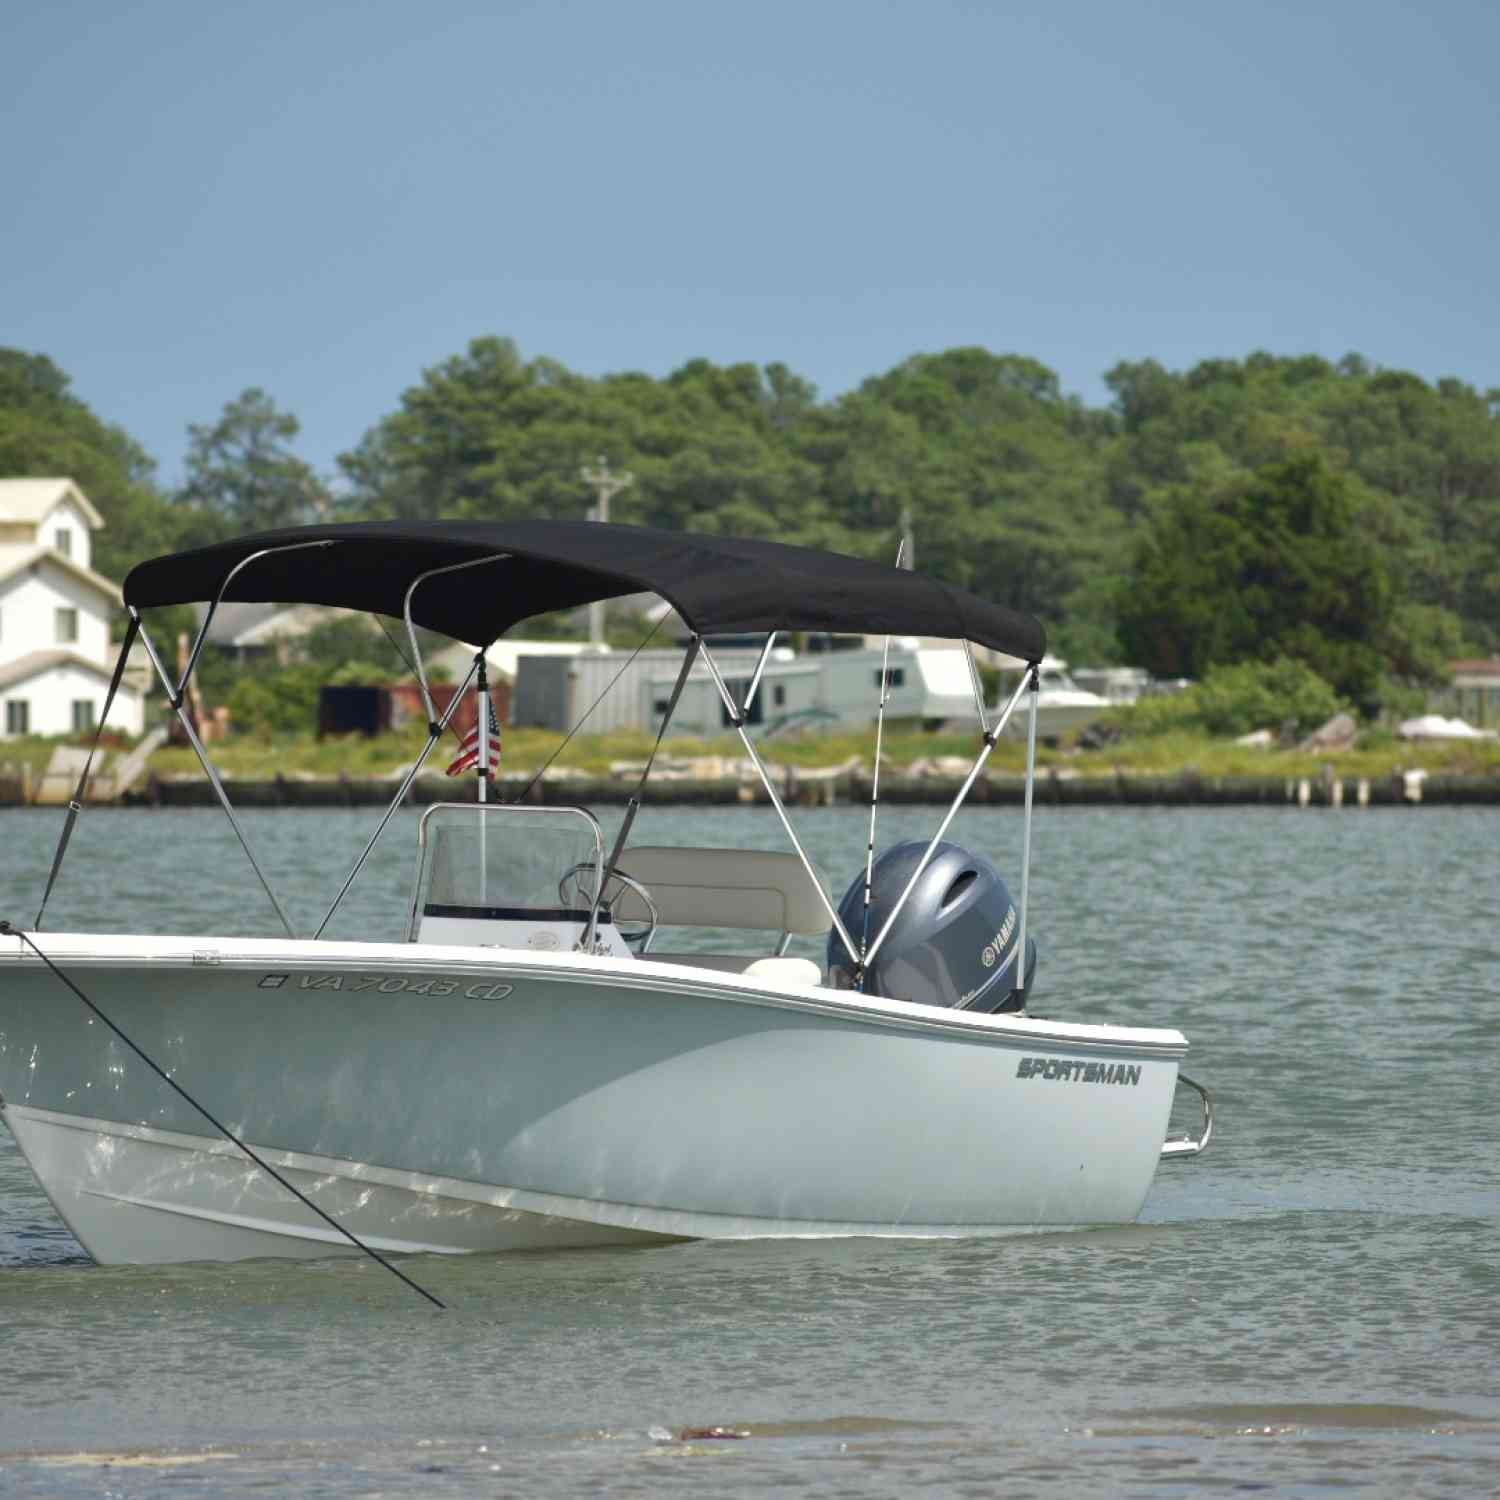 Title: Sportsman a dream come true - On board their Sportsman Island Reef 19 Center Console - Location: Chesterfield. Participating in the Photo Contest #SportsmanSeptember2018